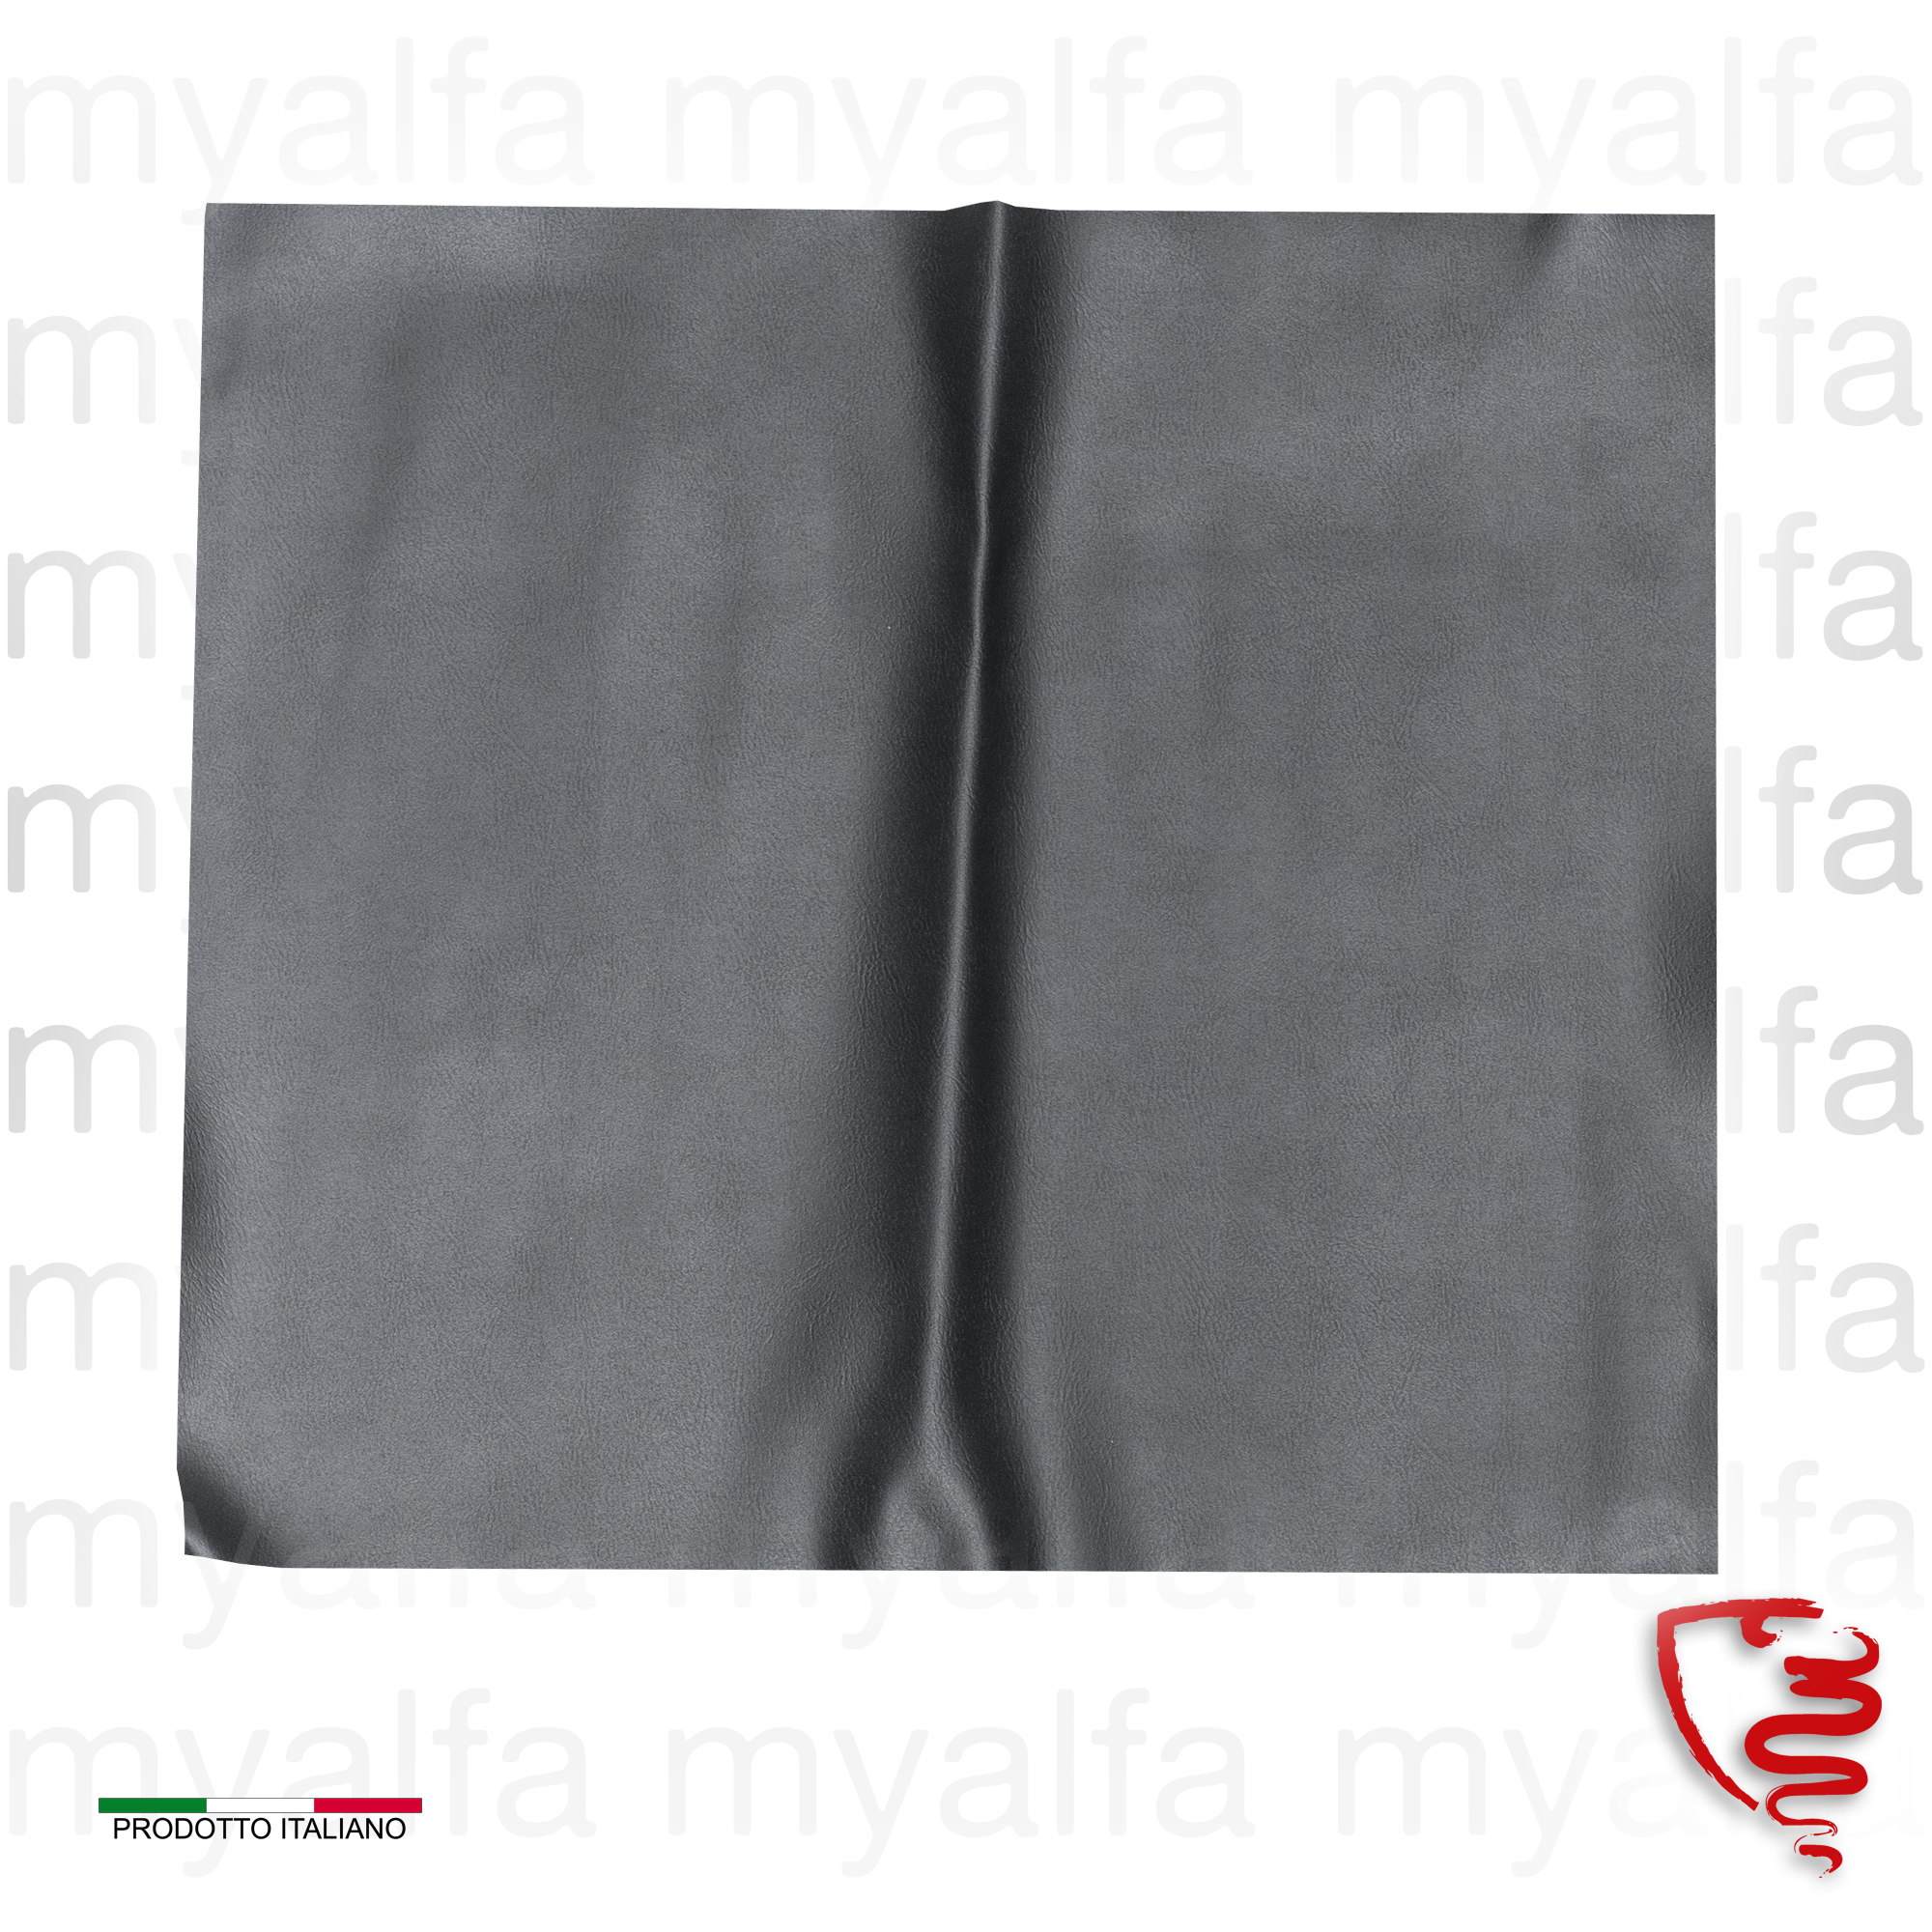 Conj. Spider 1969-77 covers bank - Black for 105/115, Spider, Interior, Seats, Seat covers